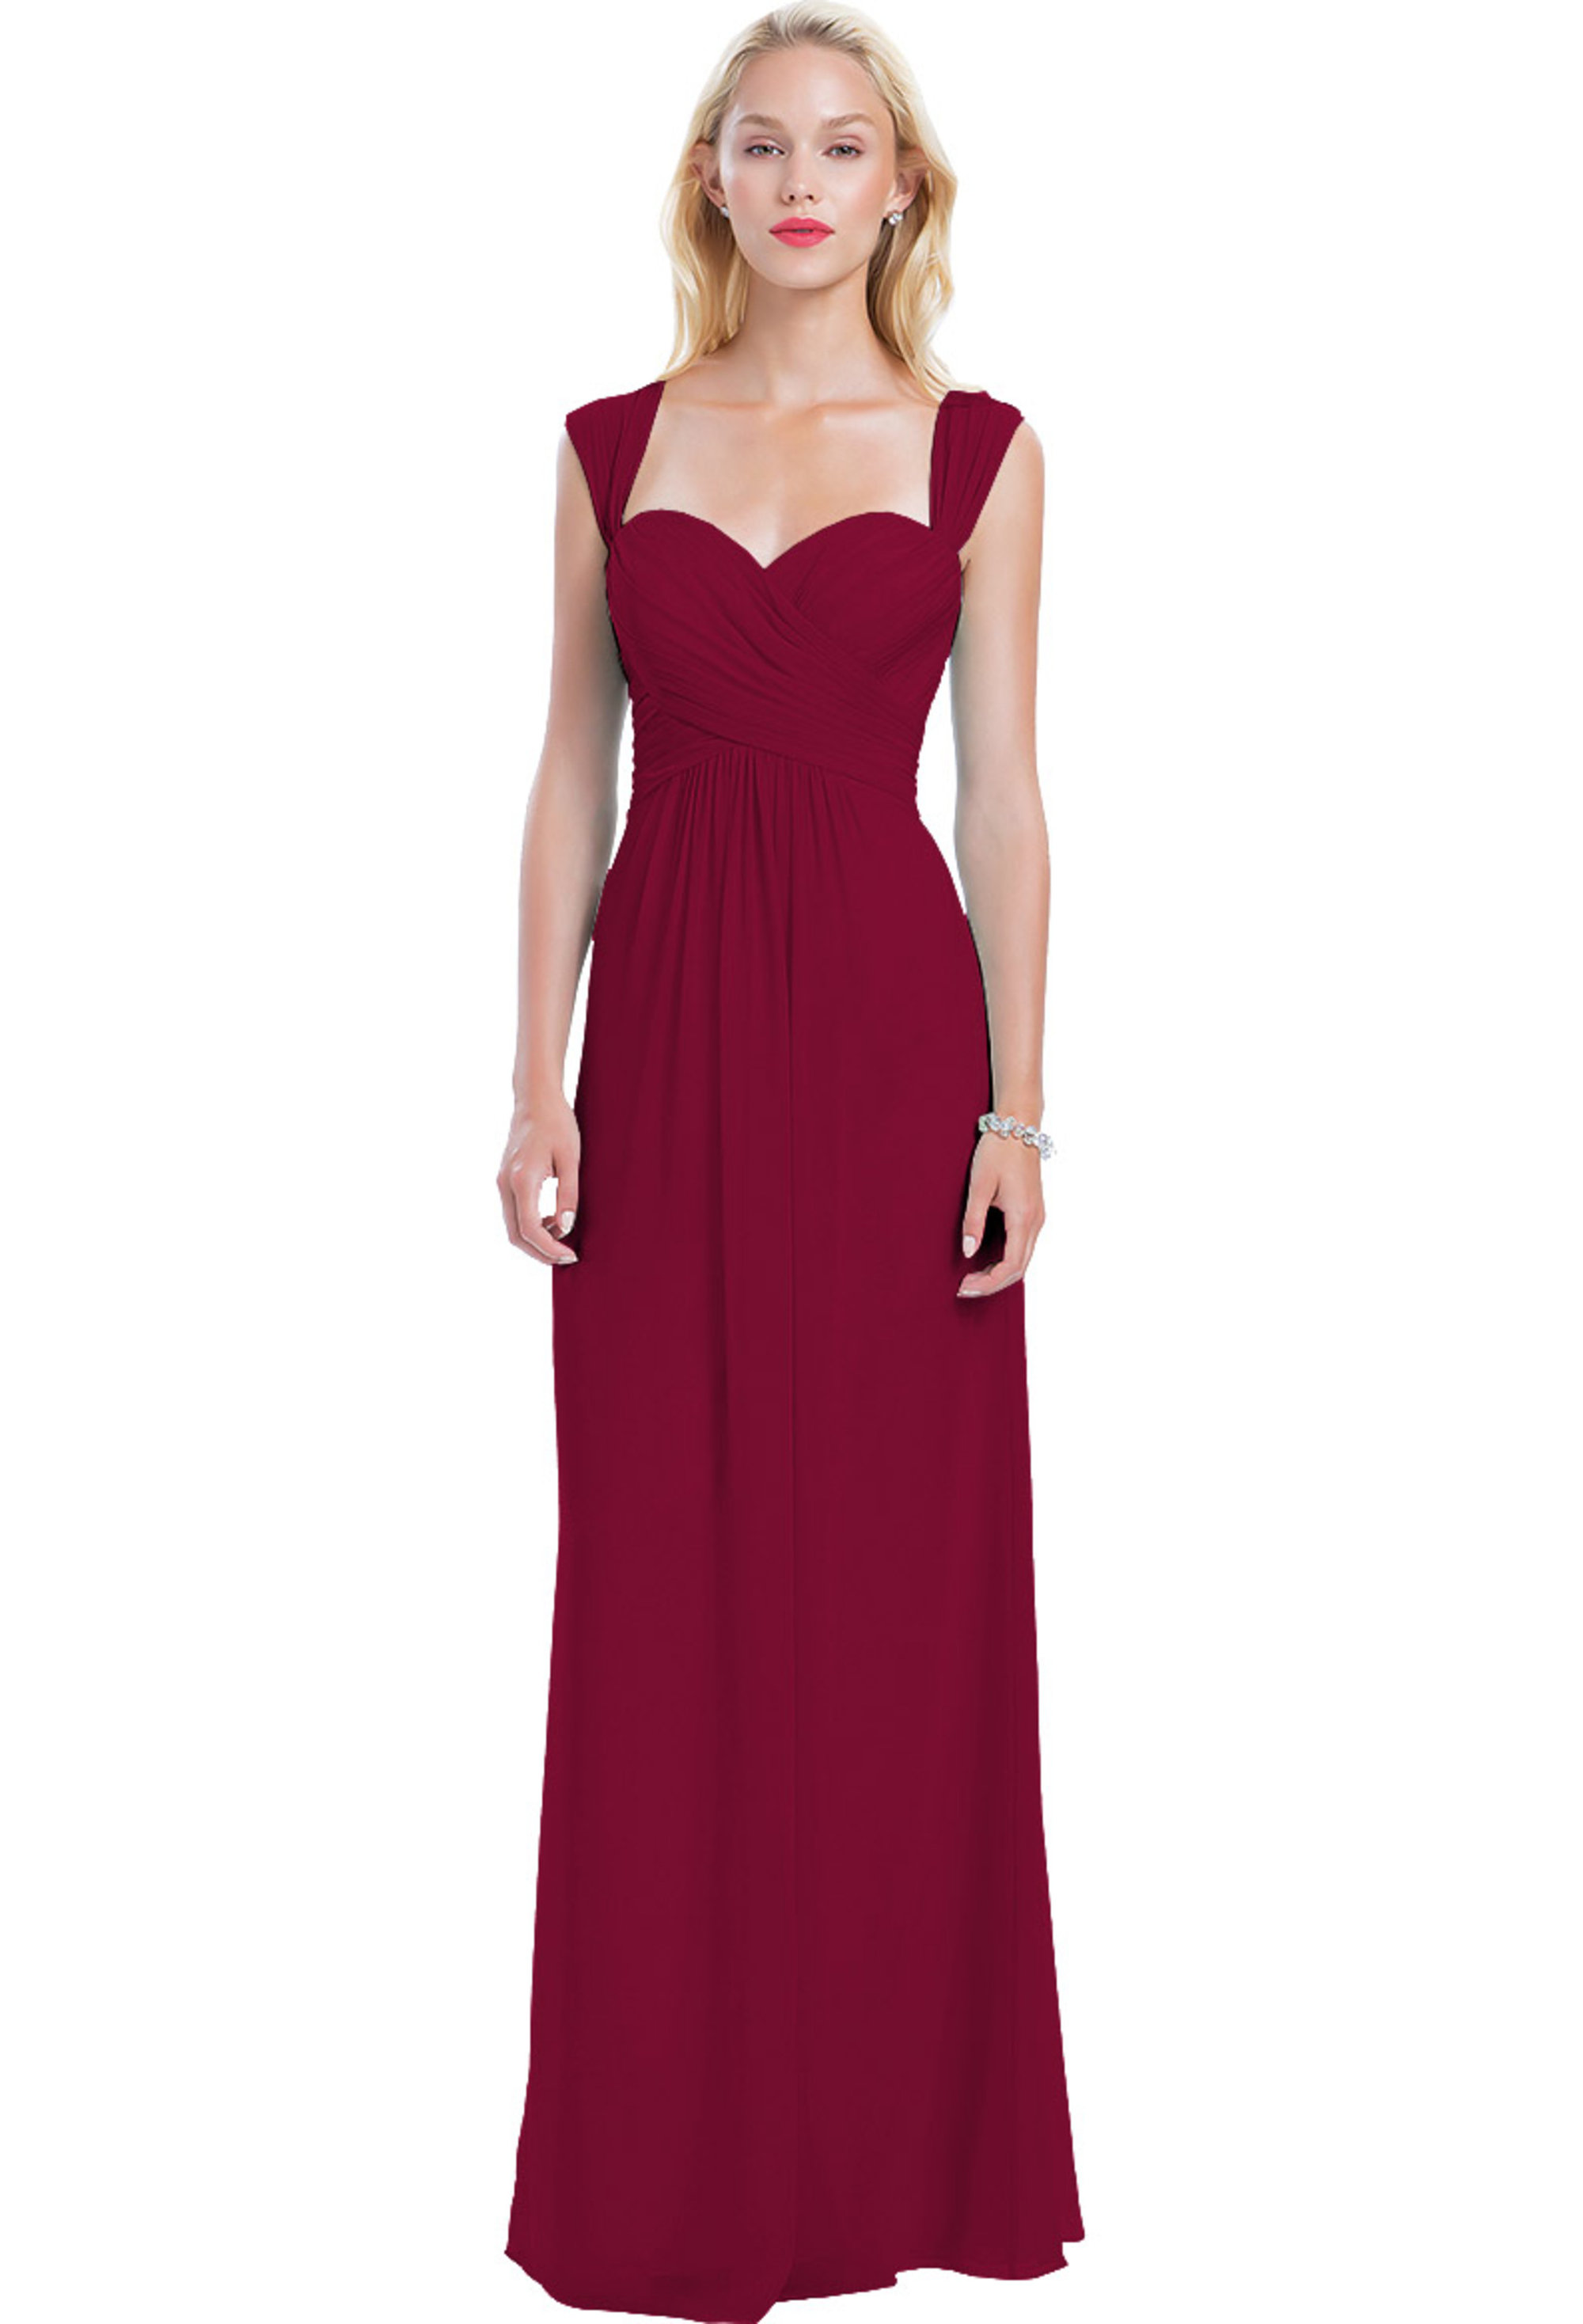 Bill Levkoff CRANBERRY Chiffon Sweetheart A-line gown, $210.00 Front